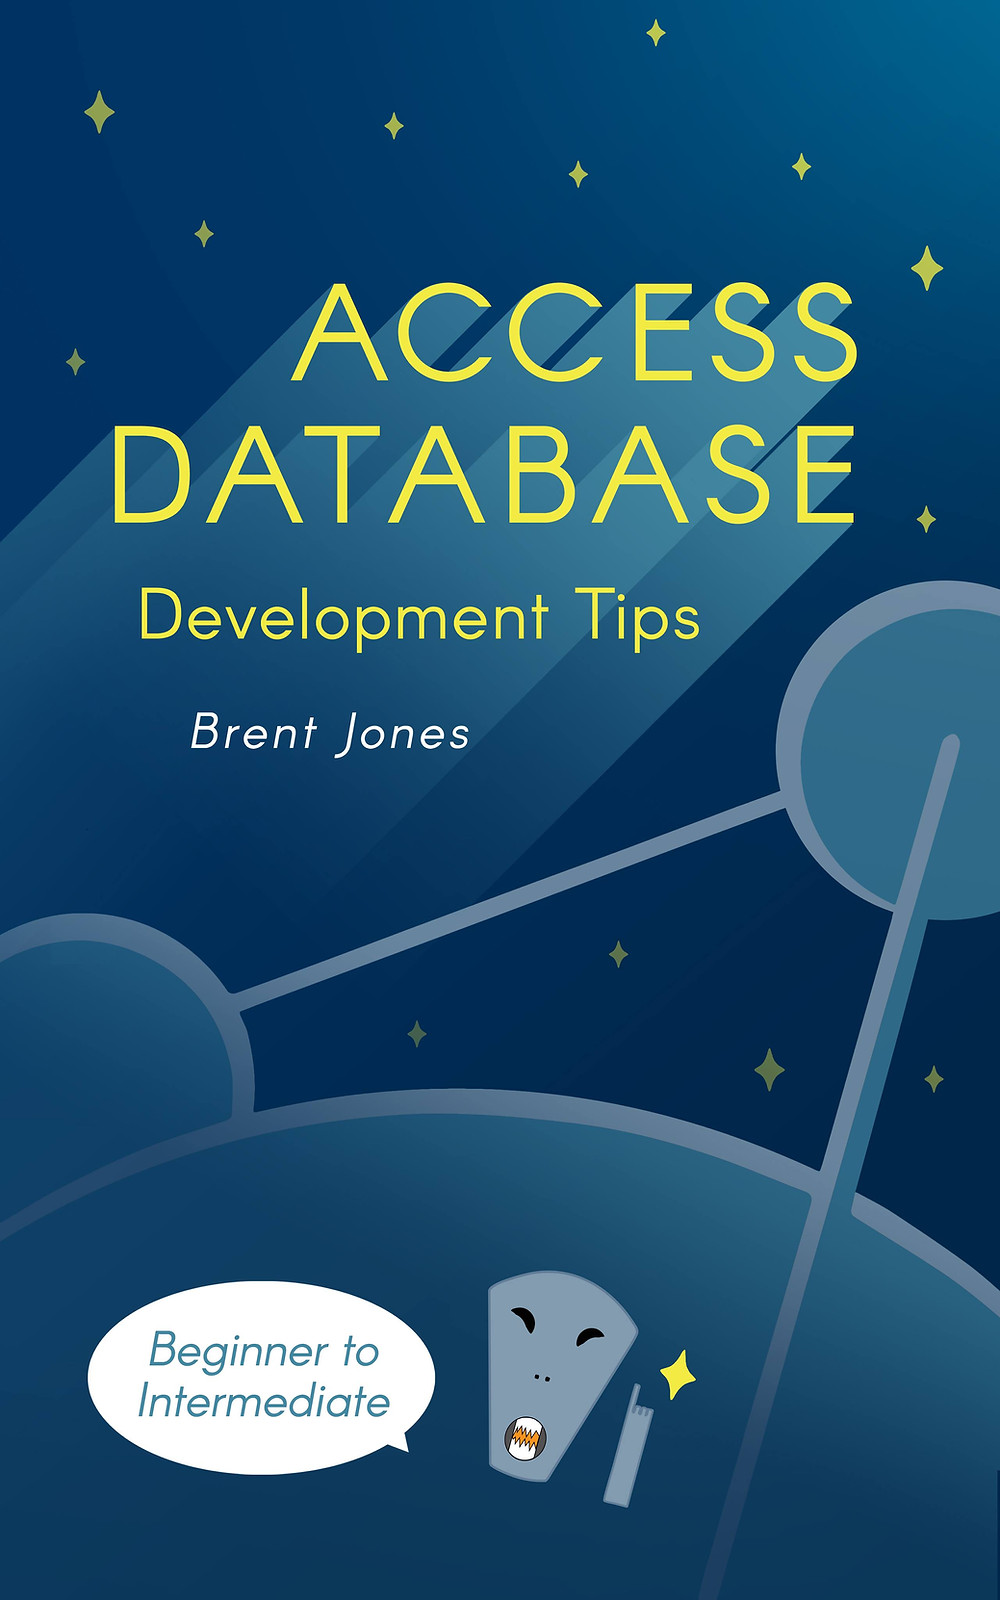 Access Database tips